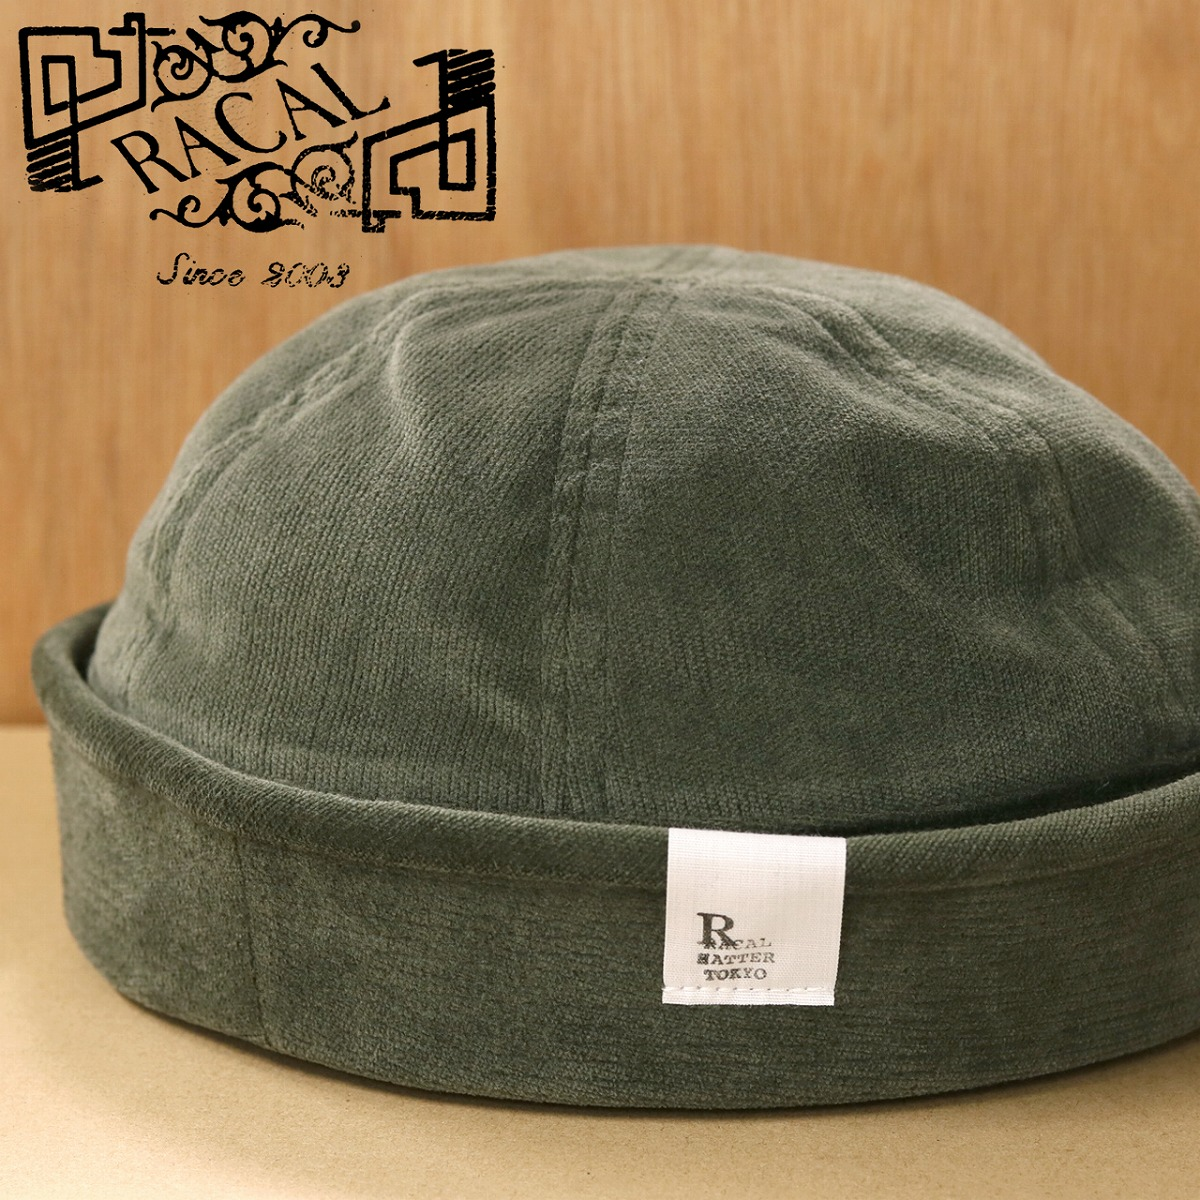 5ba451fefc1 Shin pull Malin coordinates sailor hat gentleman M L   olive  sailor hat   man hat Christmas gift present in racal spring with the セーラーハットメンズラカル ...